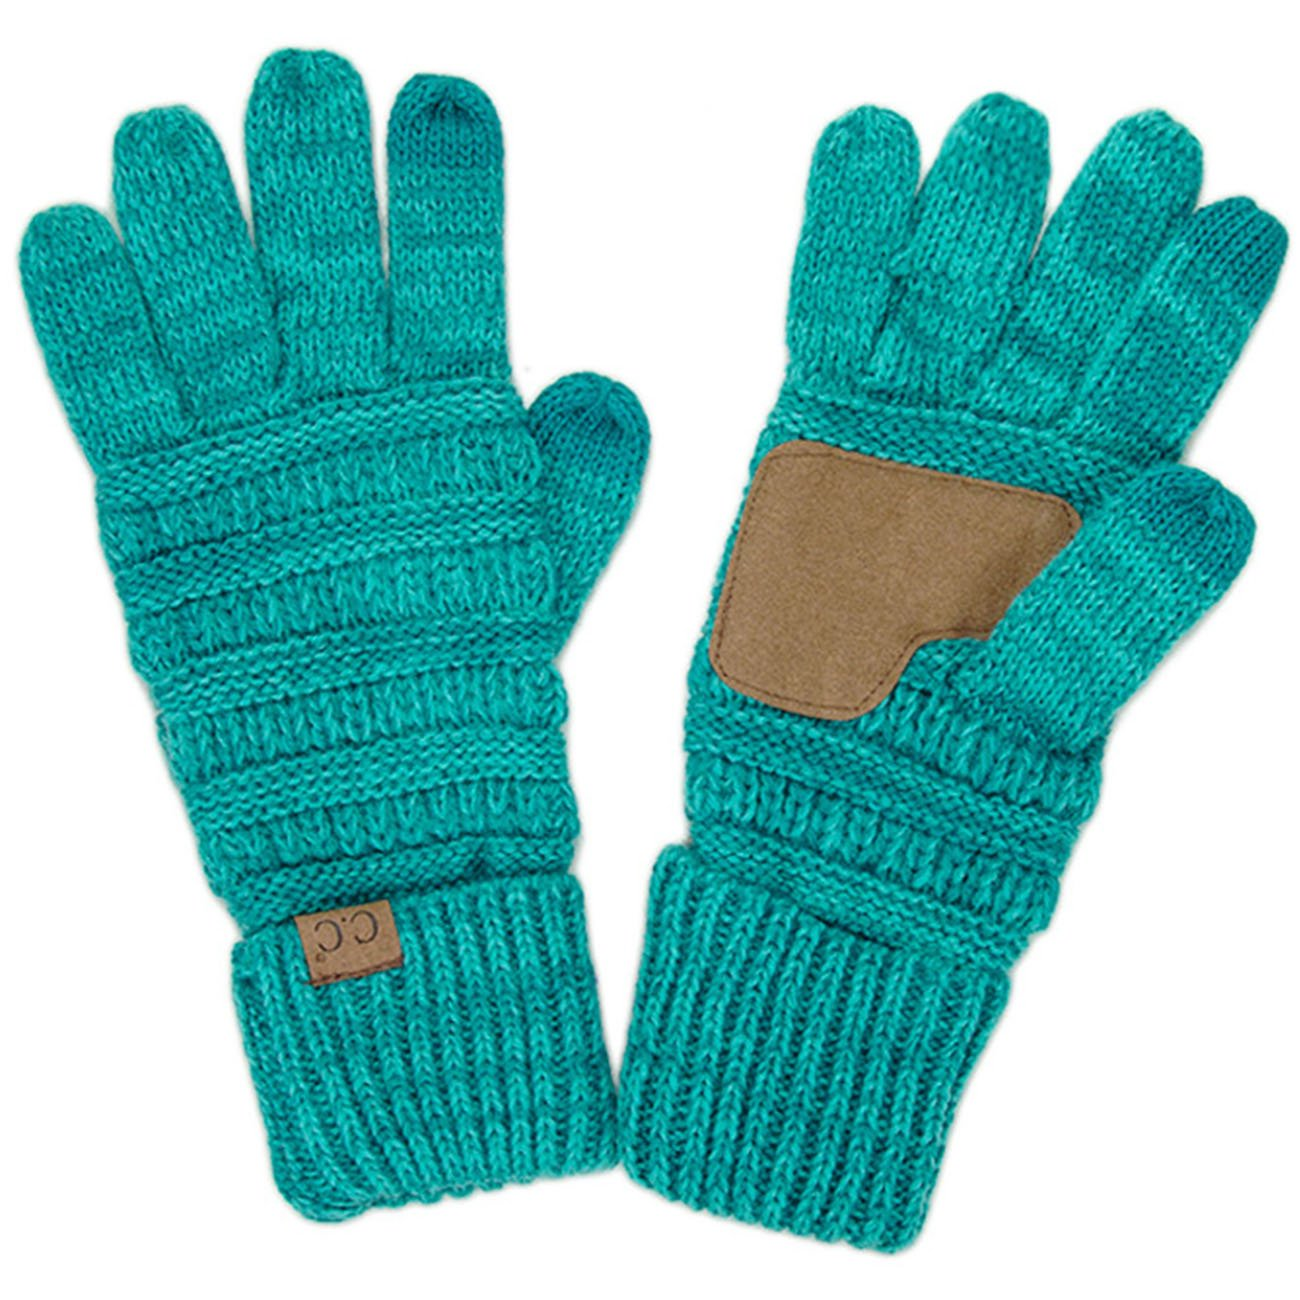 ScarvesMe CC Two Tone Soft and Warm Knit Gloves (15)